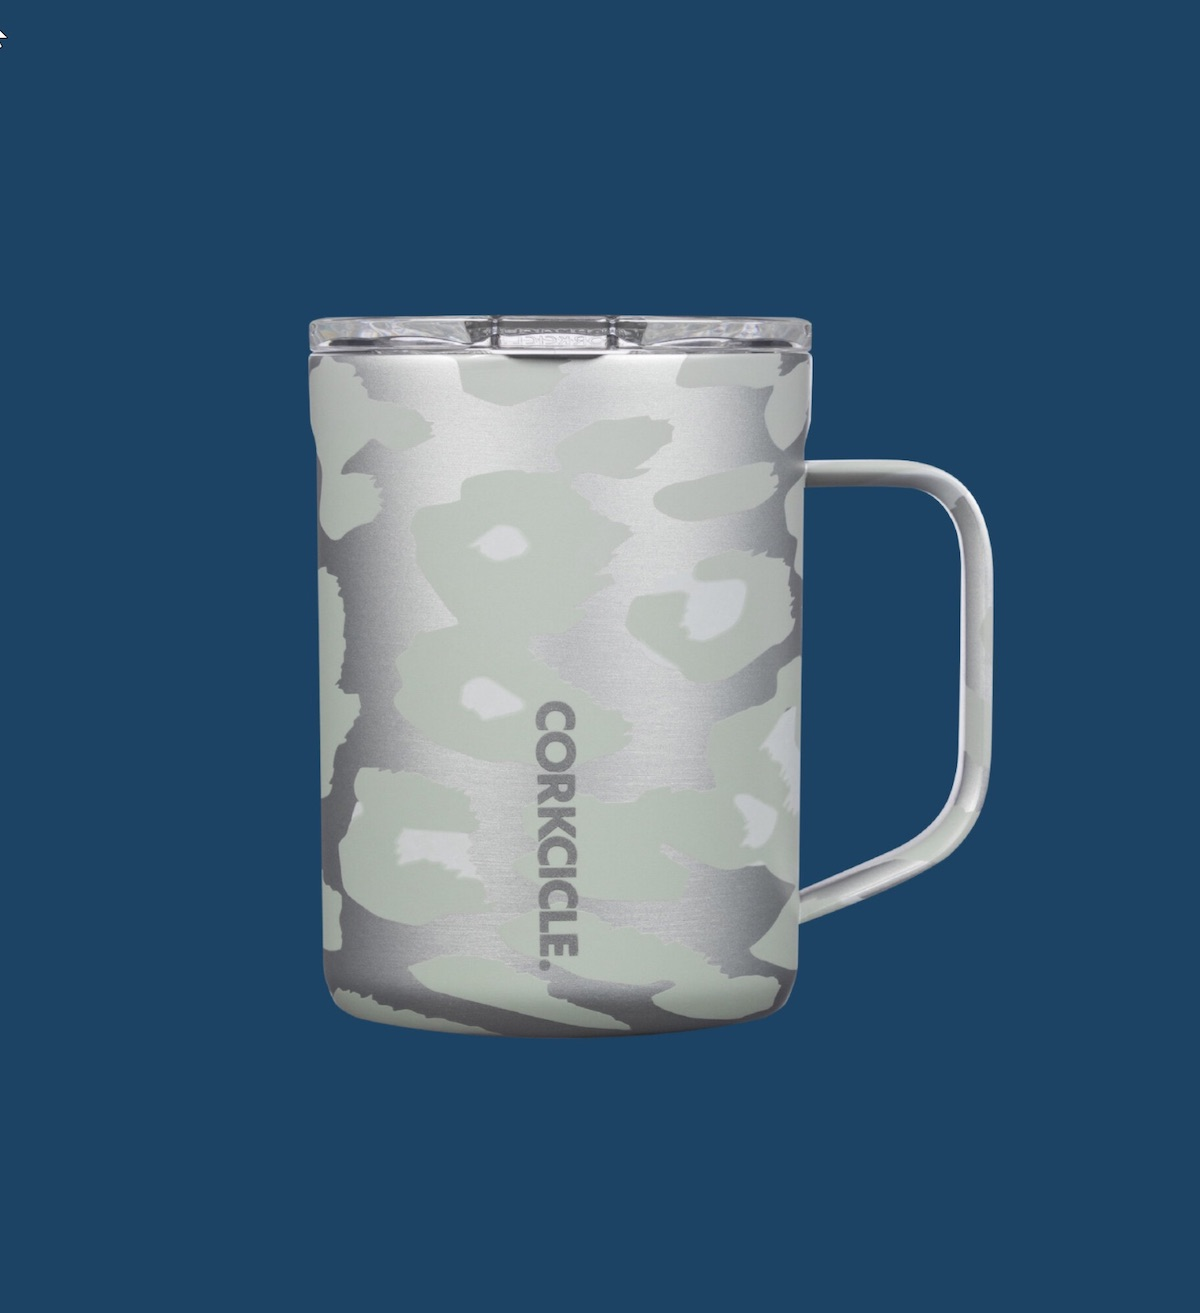 Corkcicle product 2